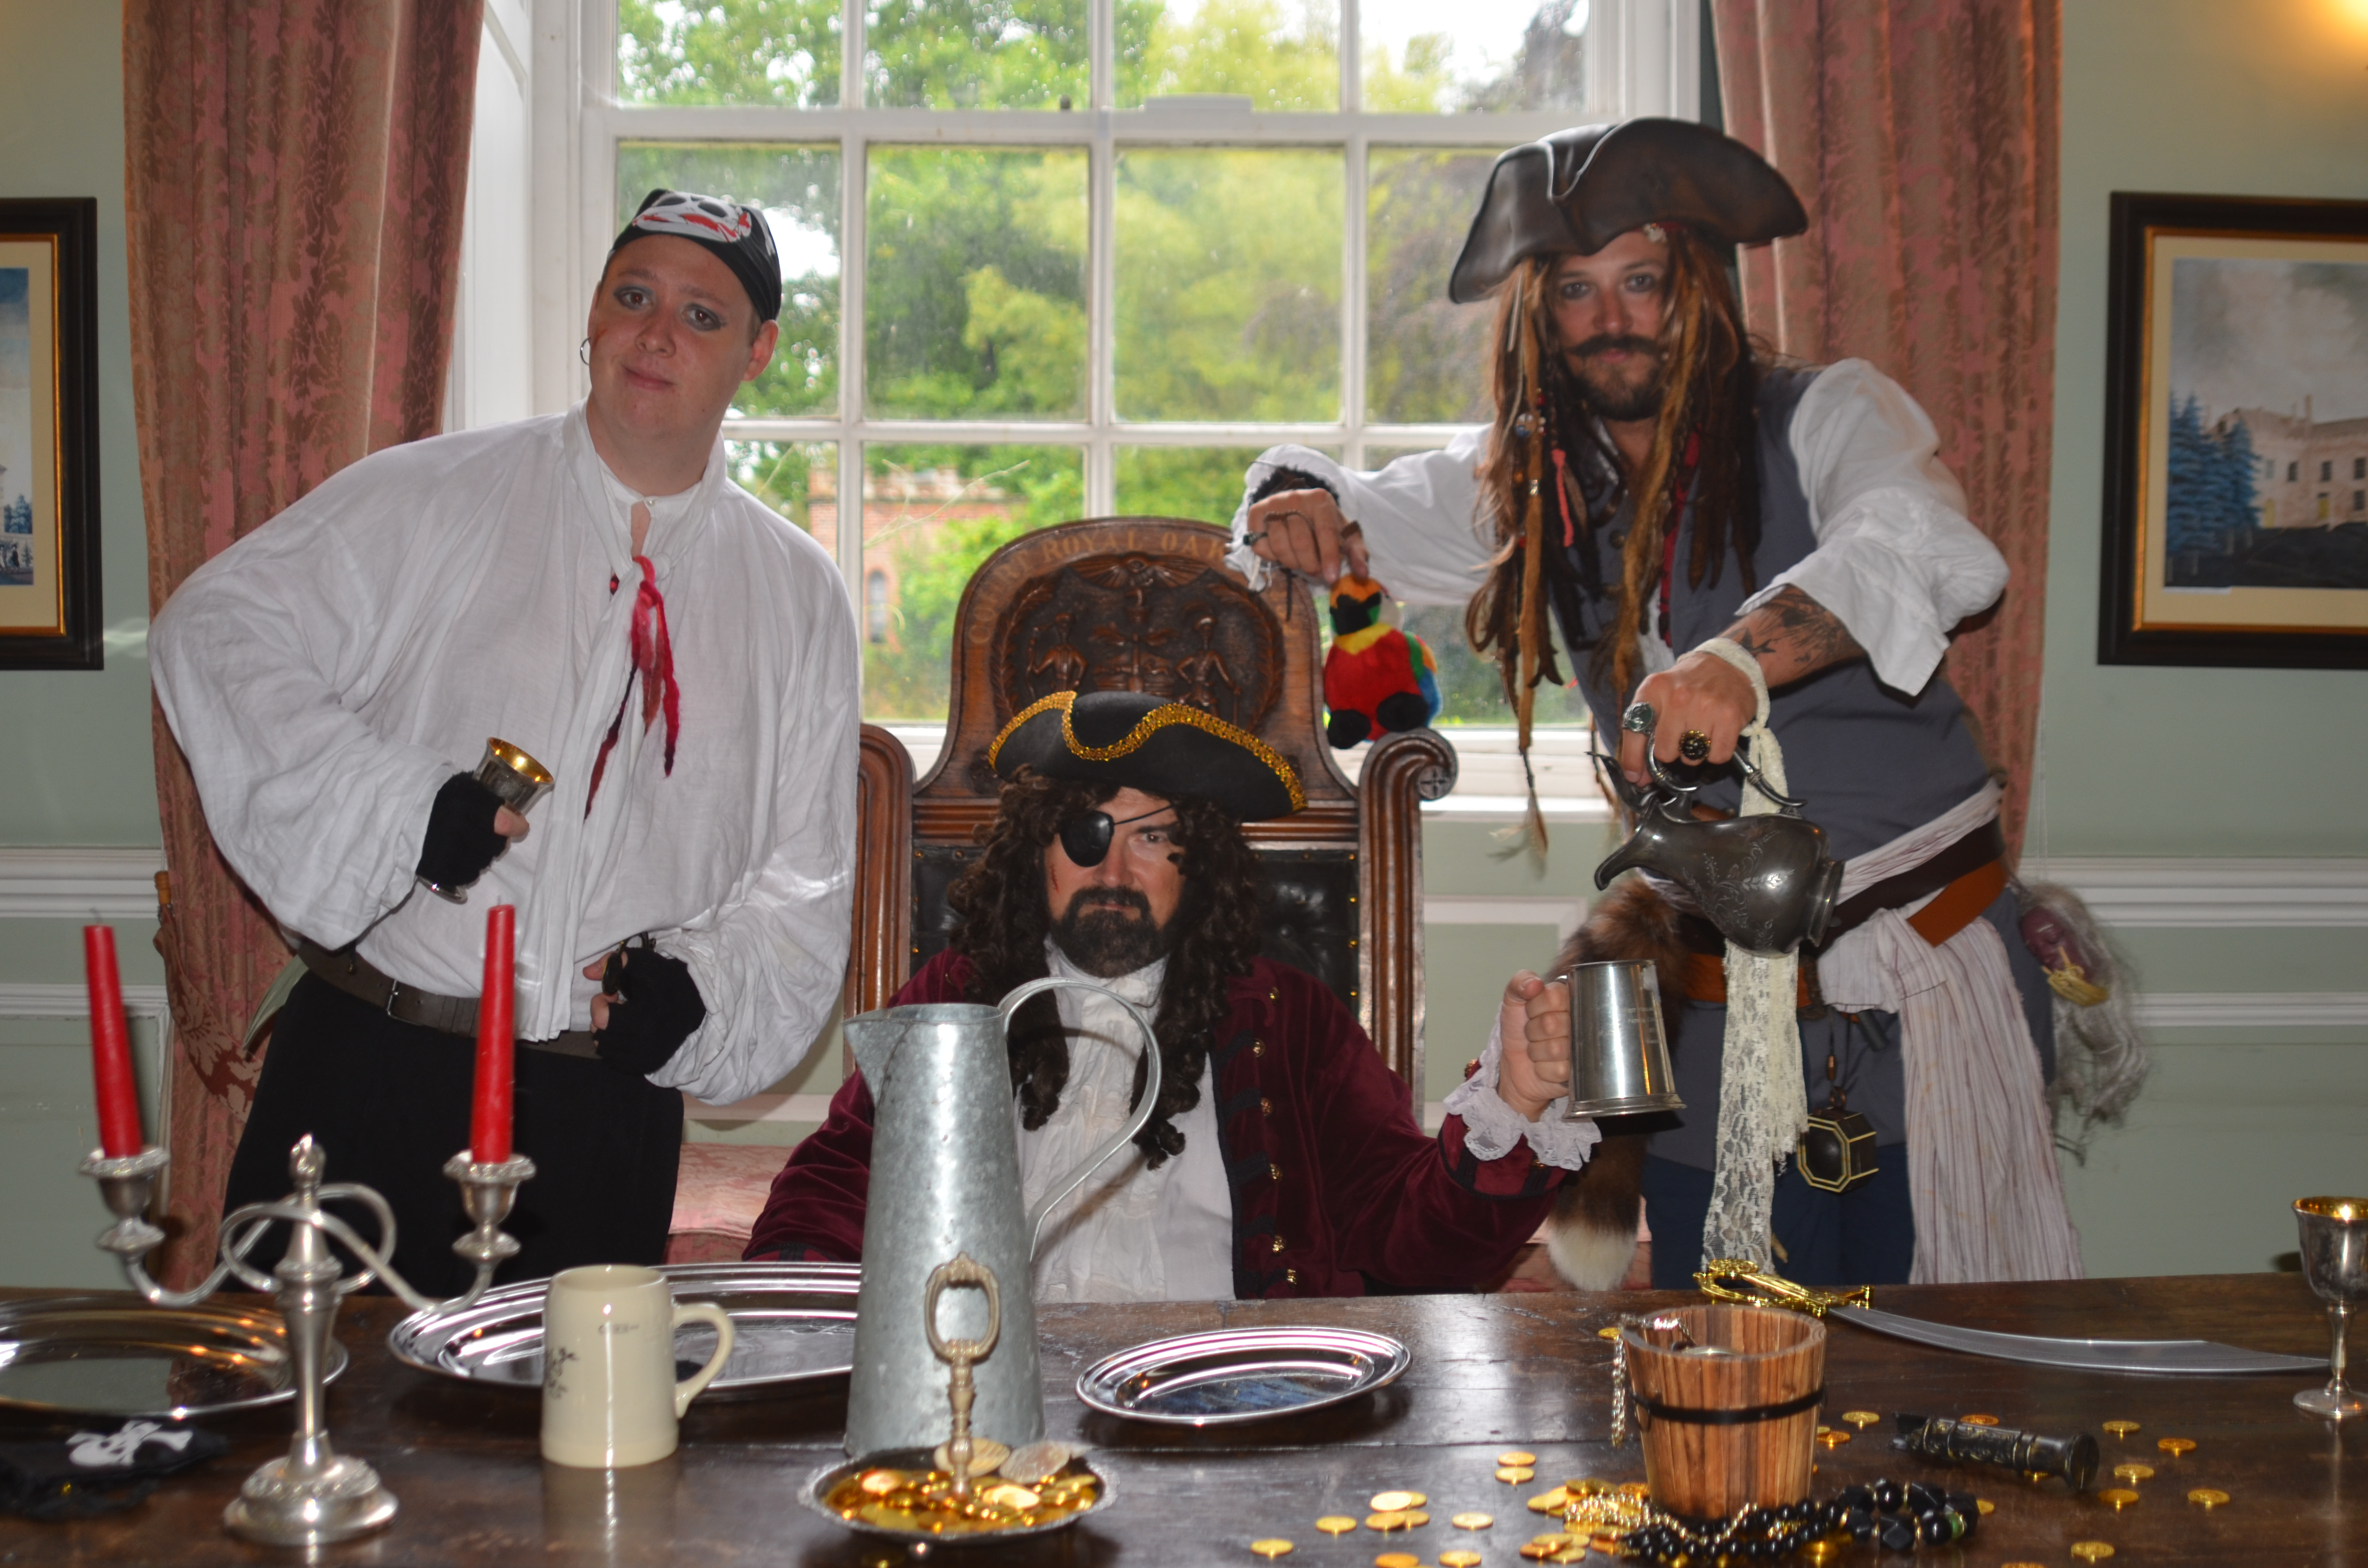 Billy Barnacle, Captain Sharkbreath & School Inspector Jack Sparrow at the Captain's table.